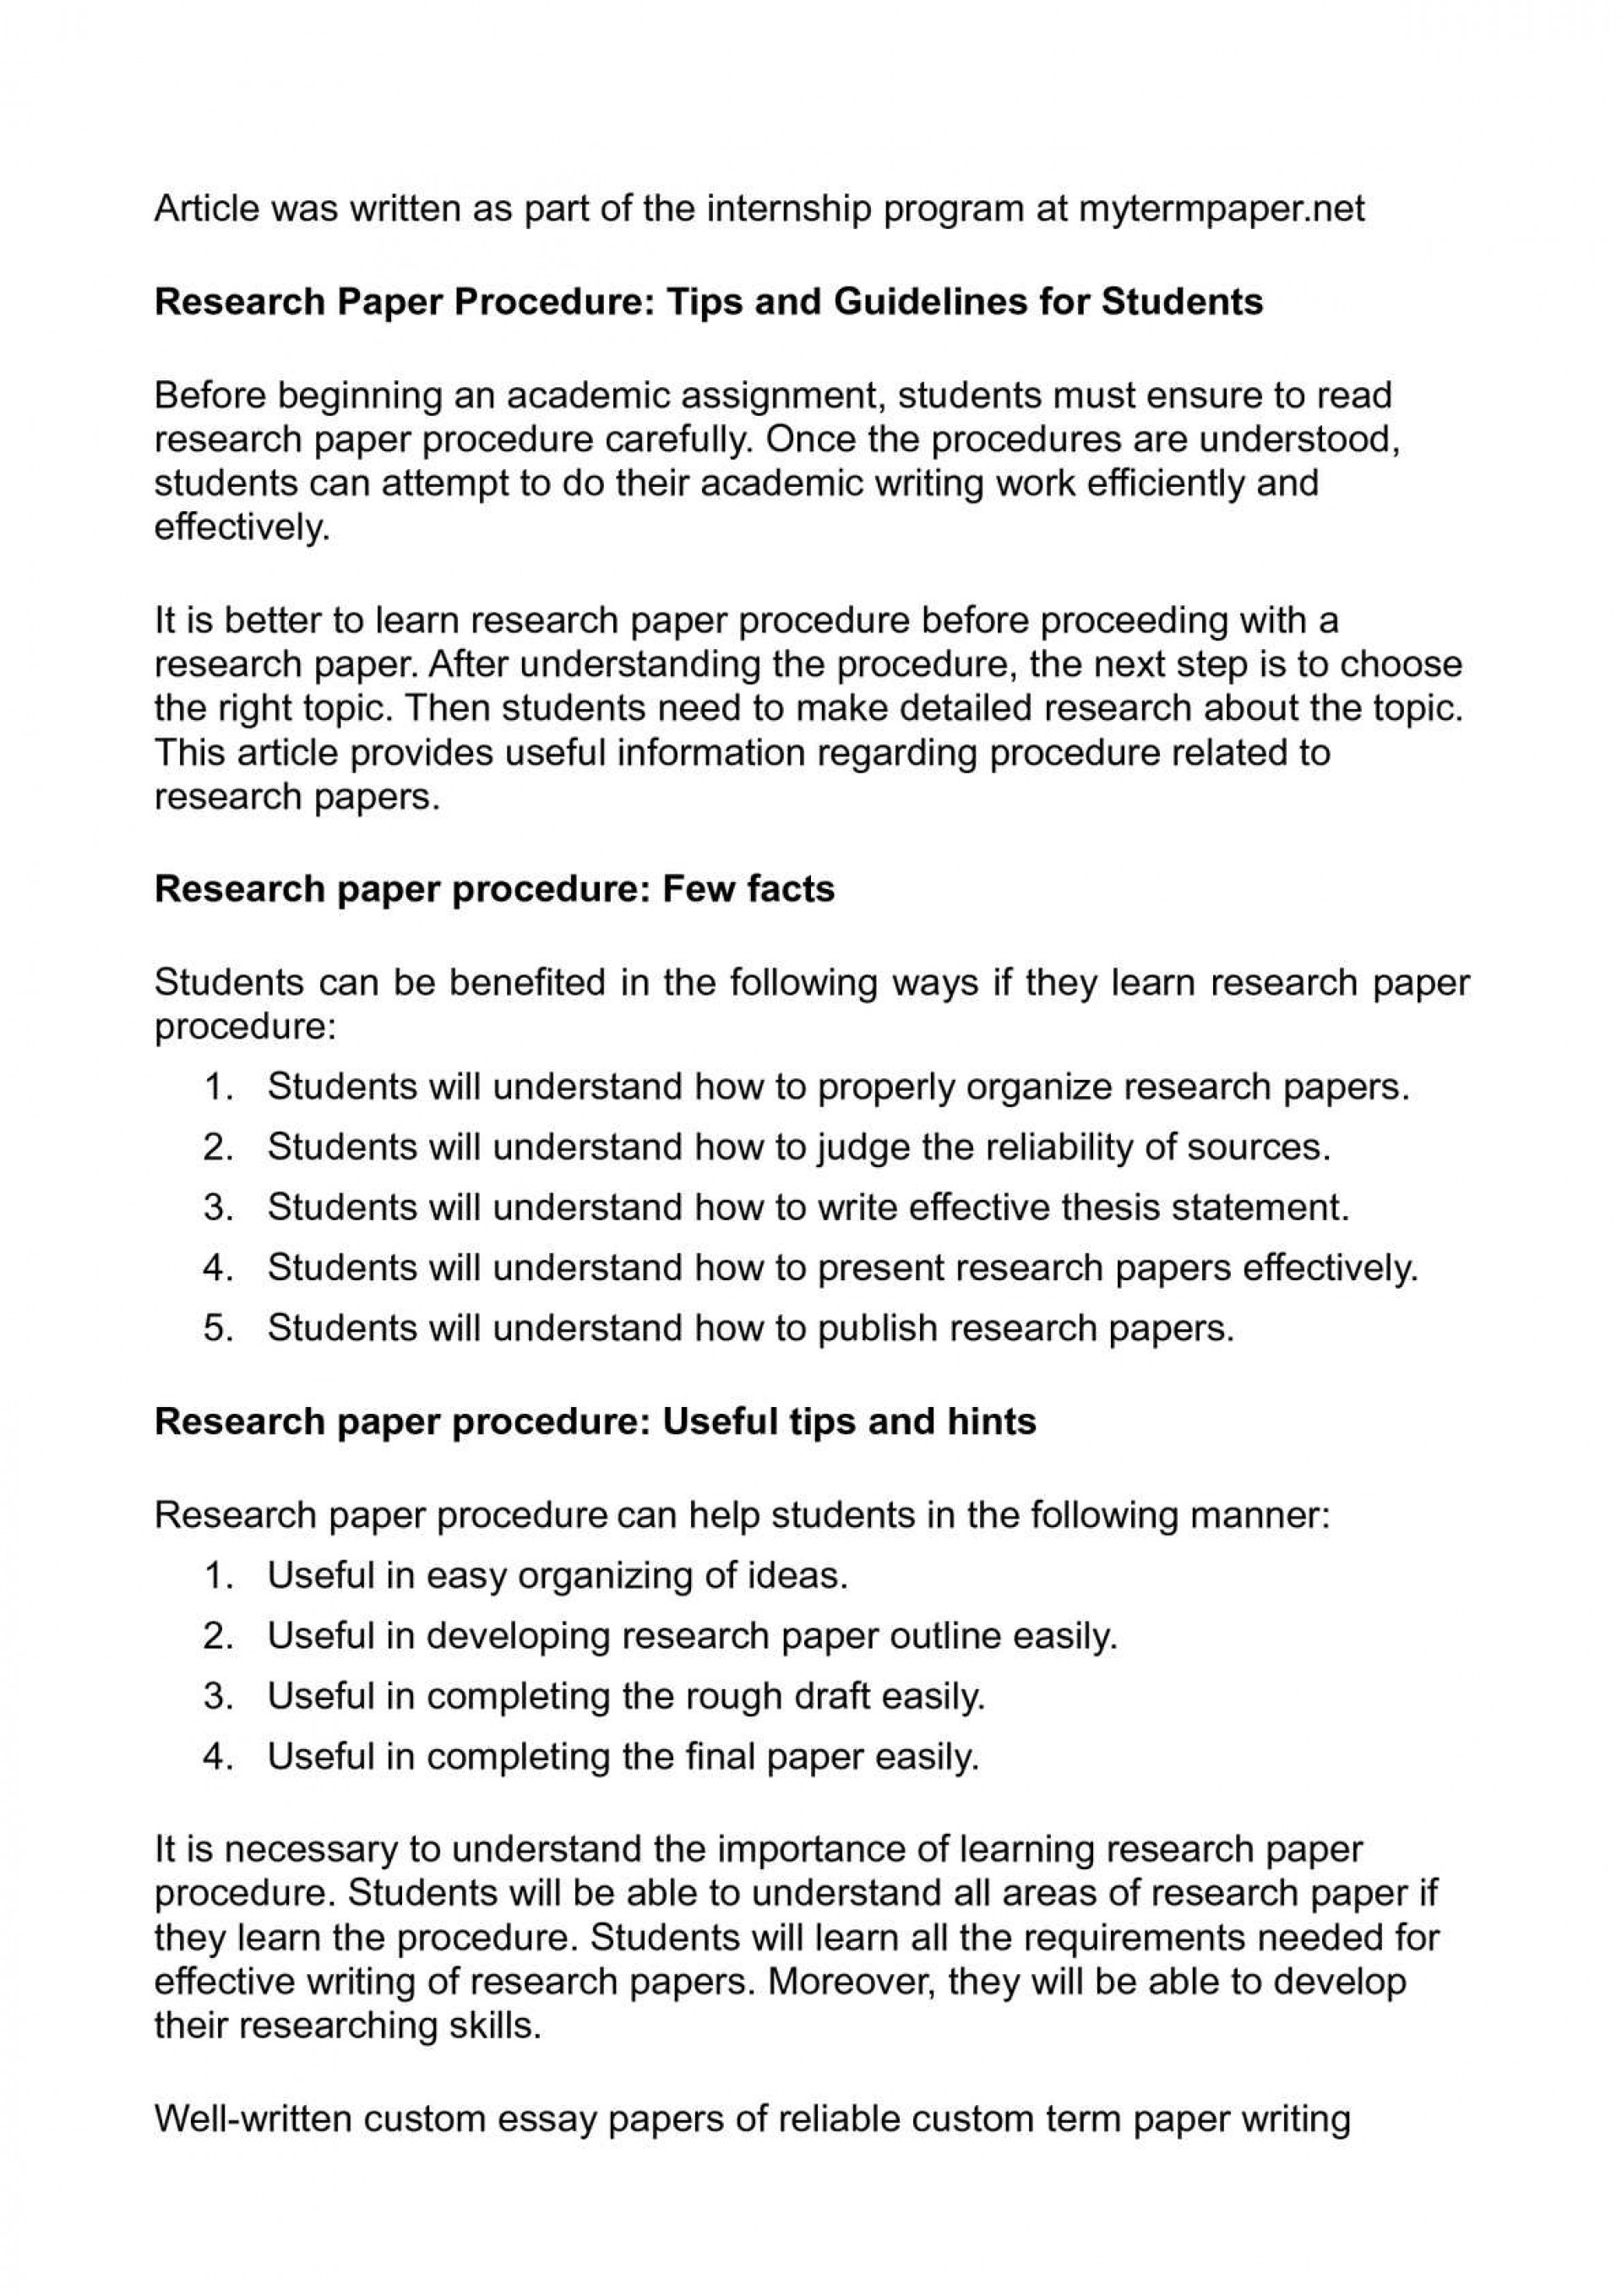 008 Developing Research Paper Outline Singular A 1920